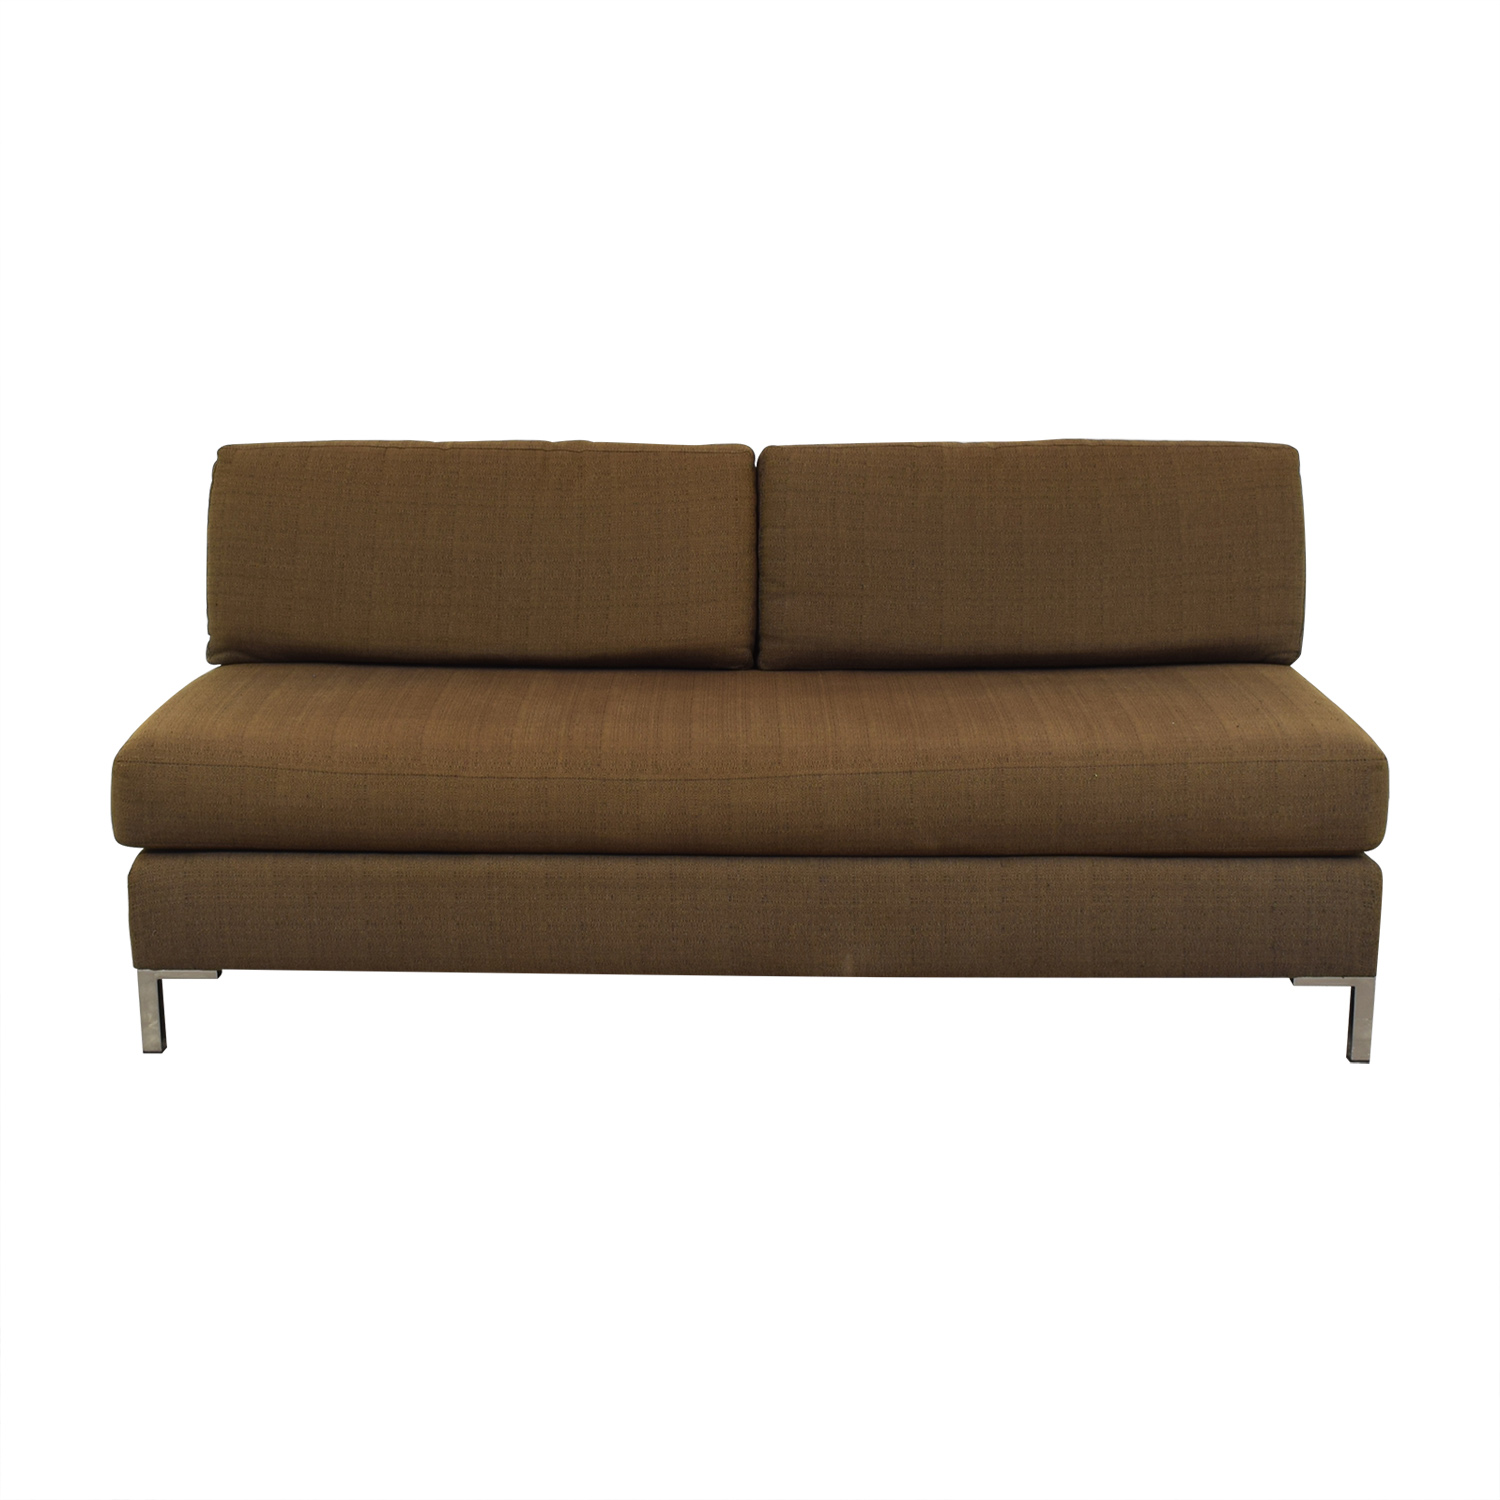 West Elm West Elm Armless Sofa second hand